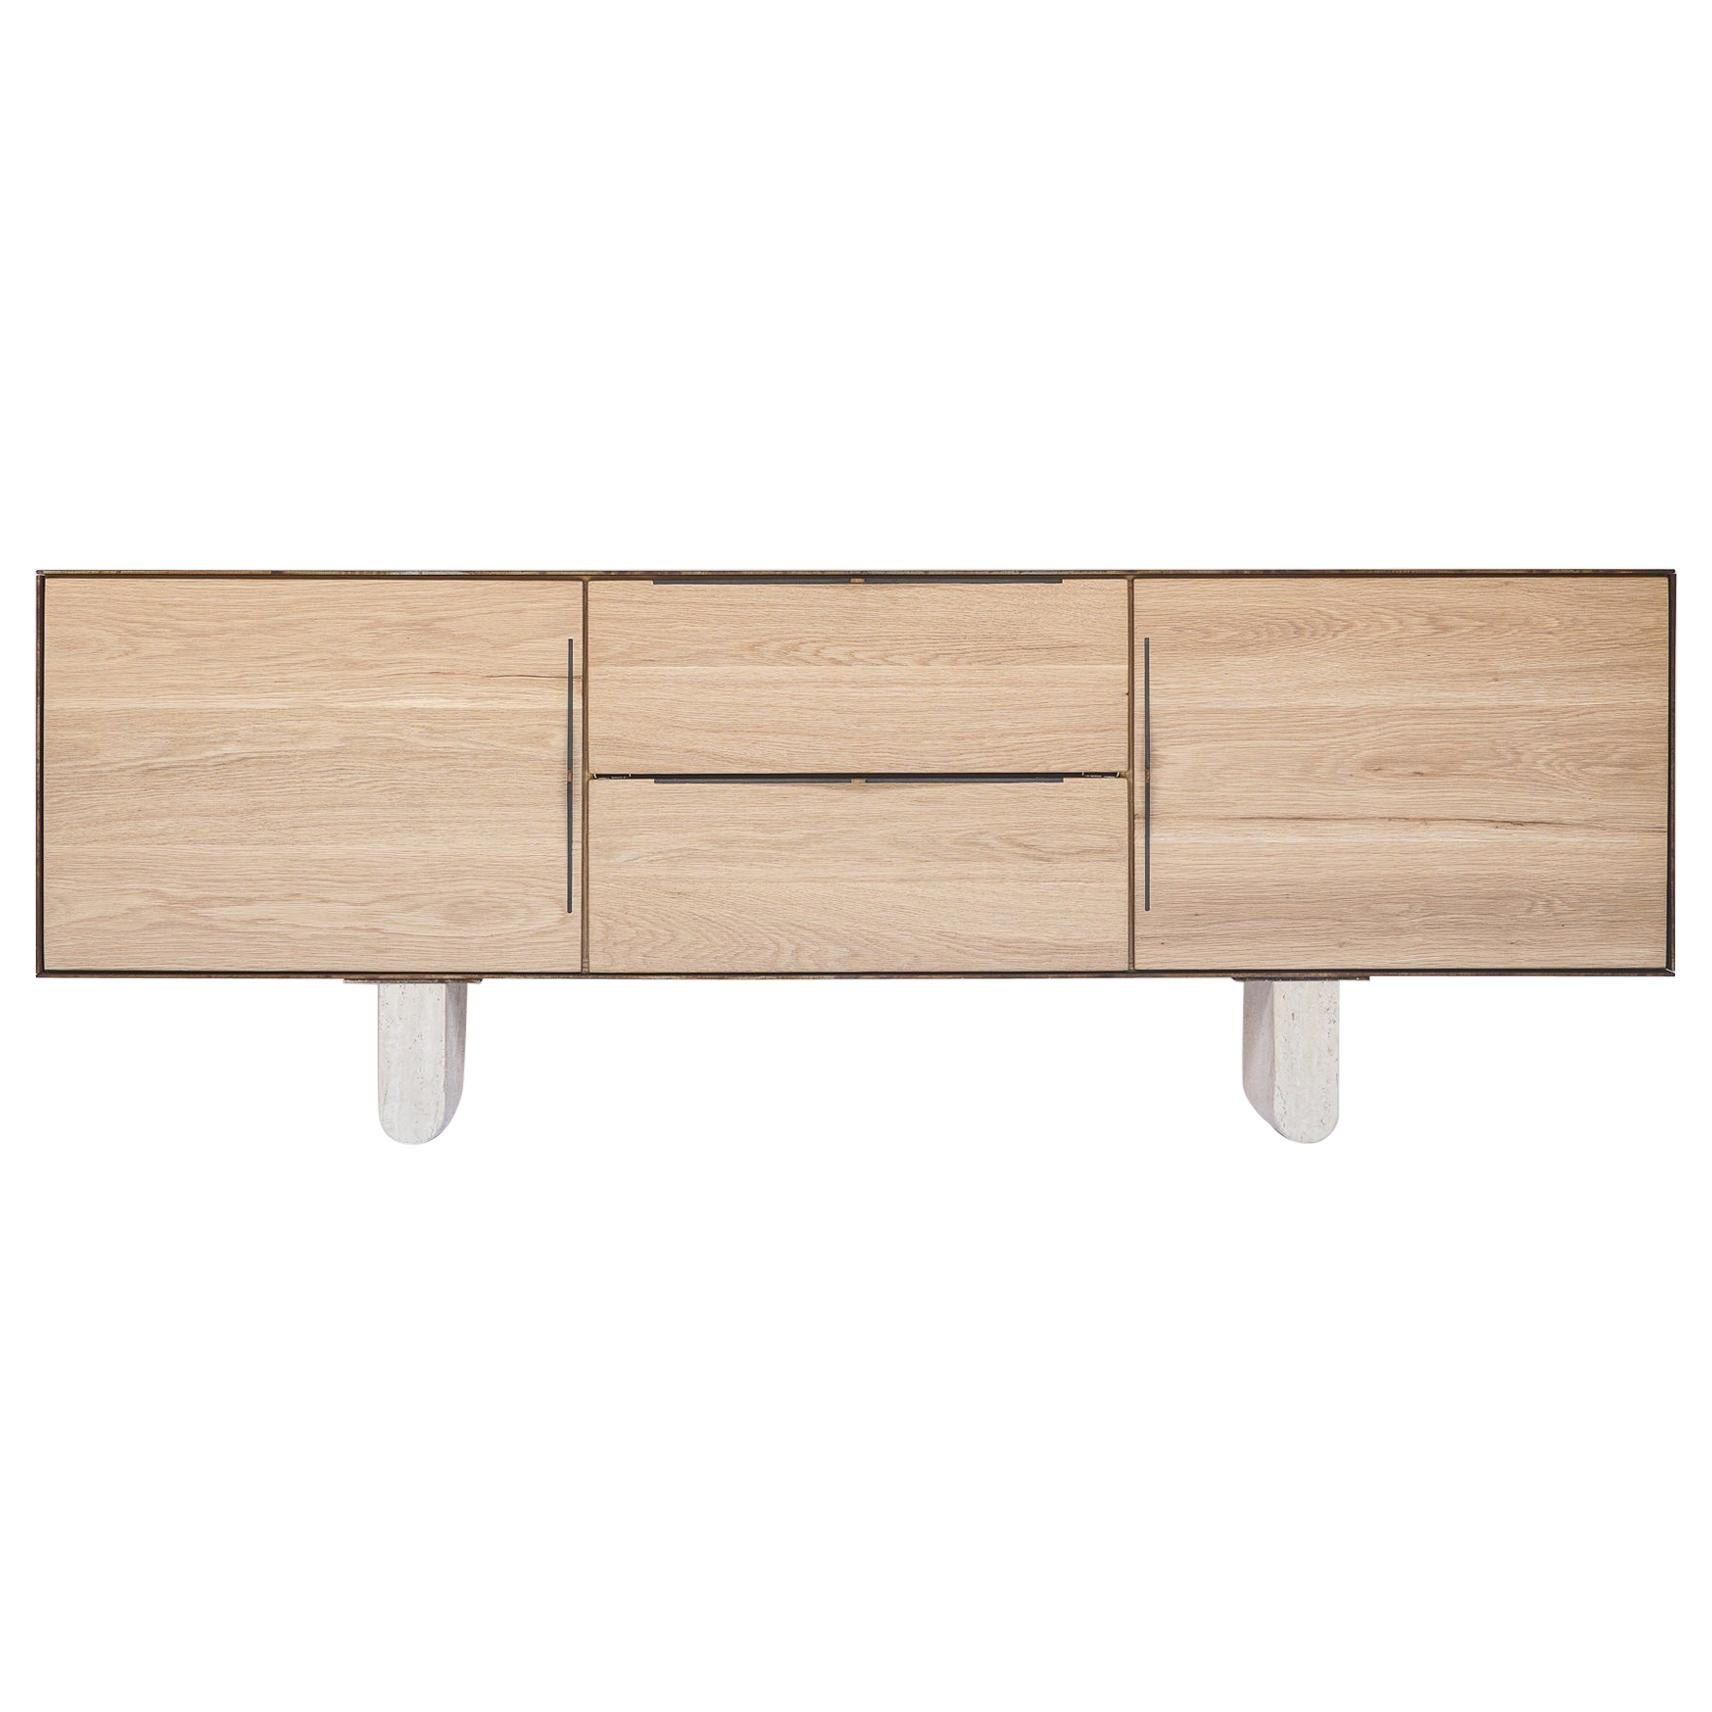 Modern Swell Credenza in Oak Travertine and Steel by Ordinal Indicator